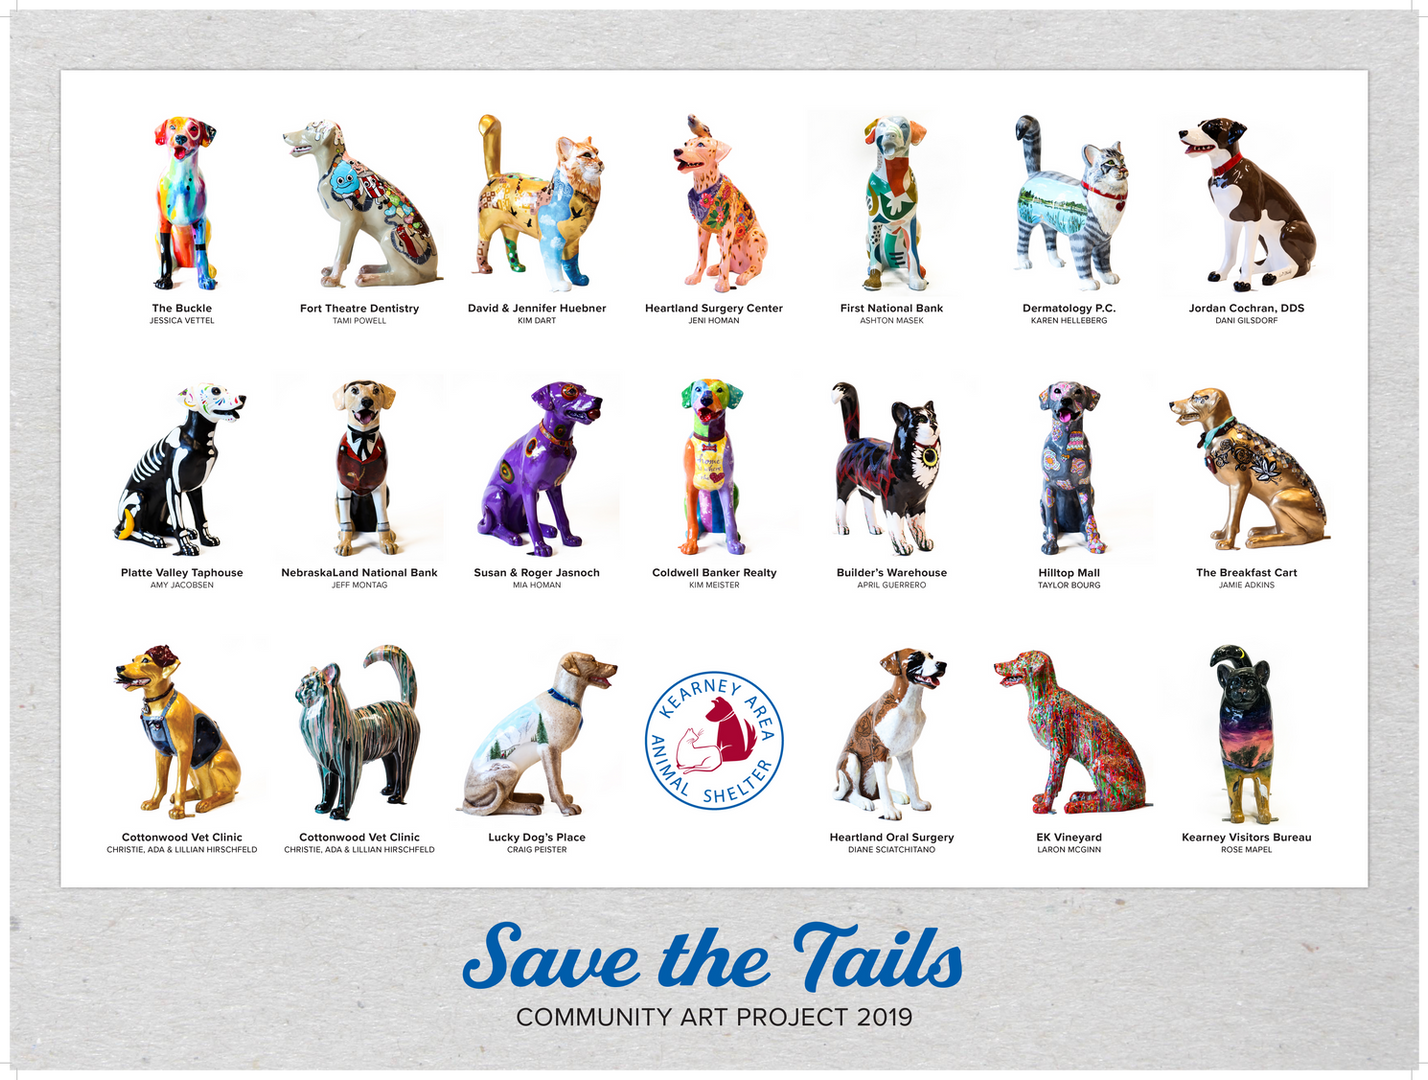 Save the Tails